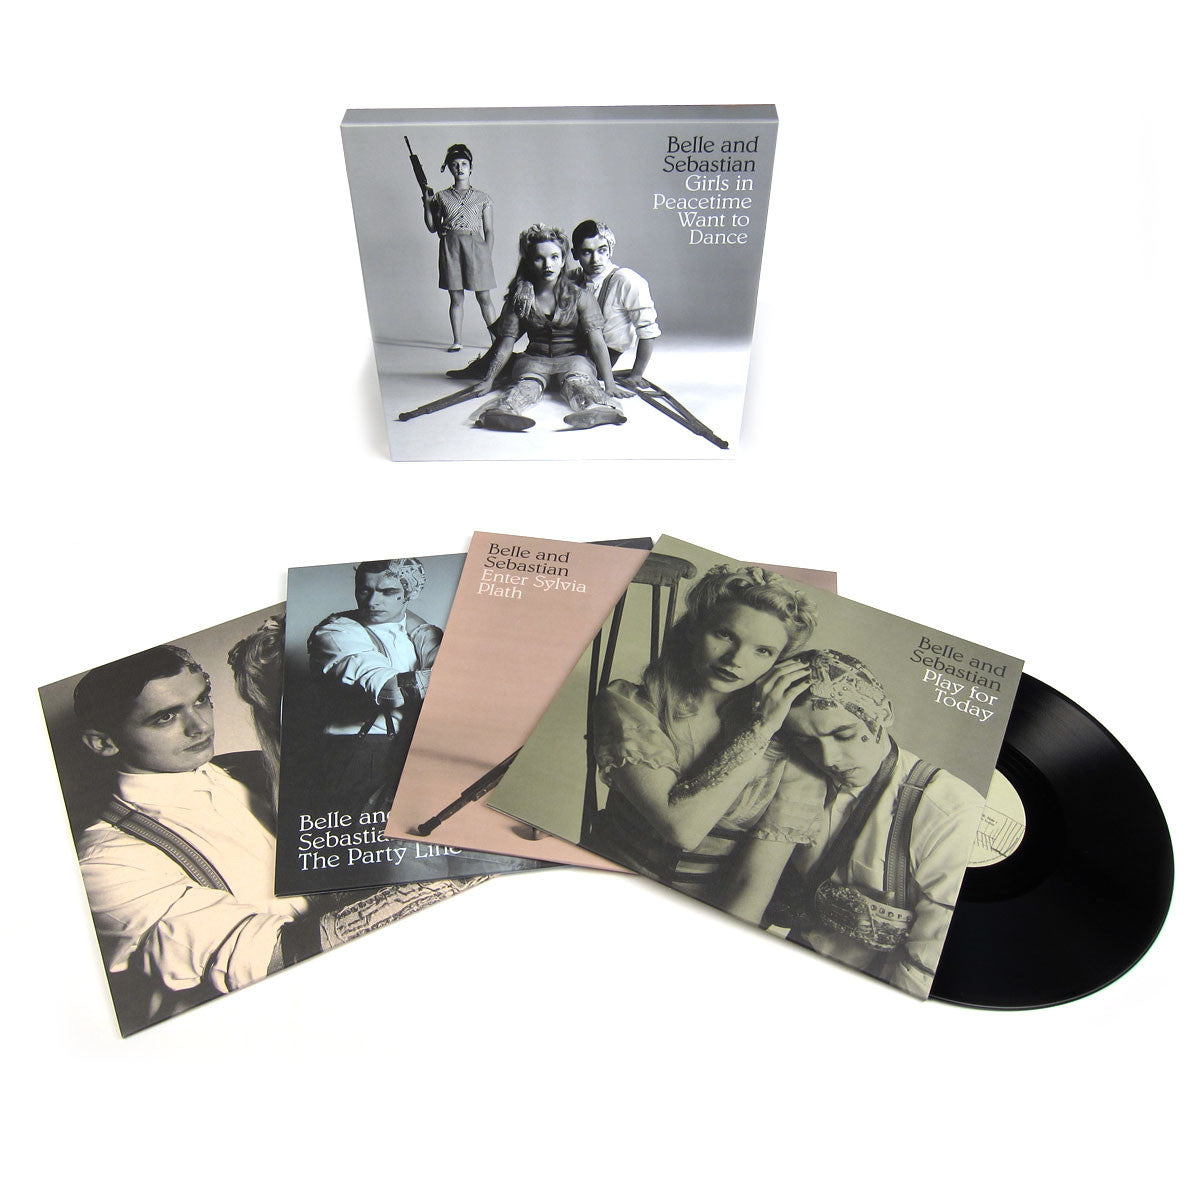 Belle & Sebastian: Girls In Peacetime Want To Dance (Free MP3) Vinyl 4LP Boxset